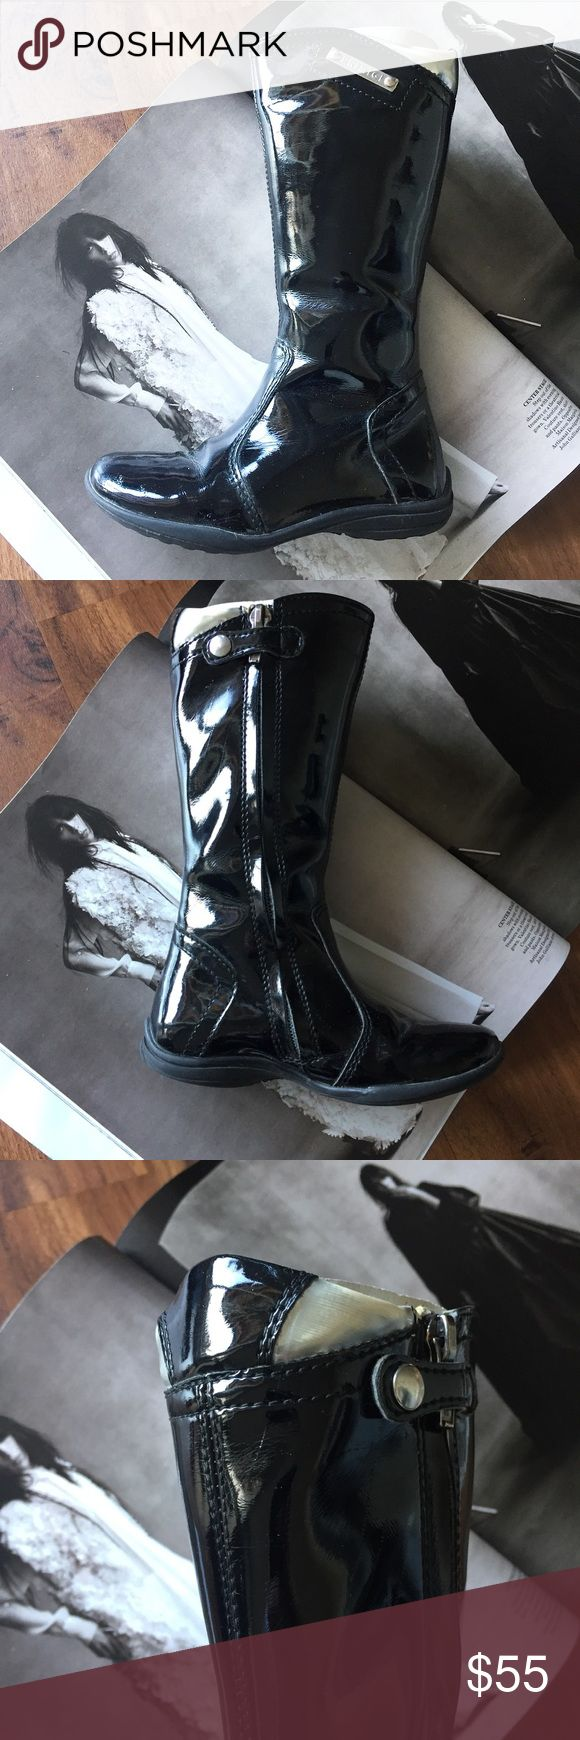 PRIMIGI patent leather tall girl boots Like new condition. Only worn once. Little scratch on one boot. Zipper. Amazing luxury quality and impeccable style. One of a kind. Chanel Dior Zara Fendi Kenzo Prada Hermes Michael Kors Valentino Lacoste Louis Vuitton Balenciaga Alexander Wang Kate Spade Hugo Boss Burberry Prada Gucci Runway Fashion show.  Free people. Premuim Signature collection. Bundle with other items to get 15% off. Primigi Shoes Boots